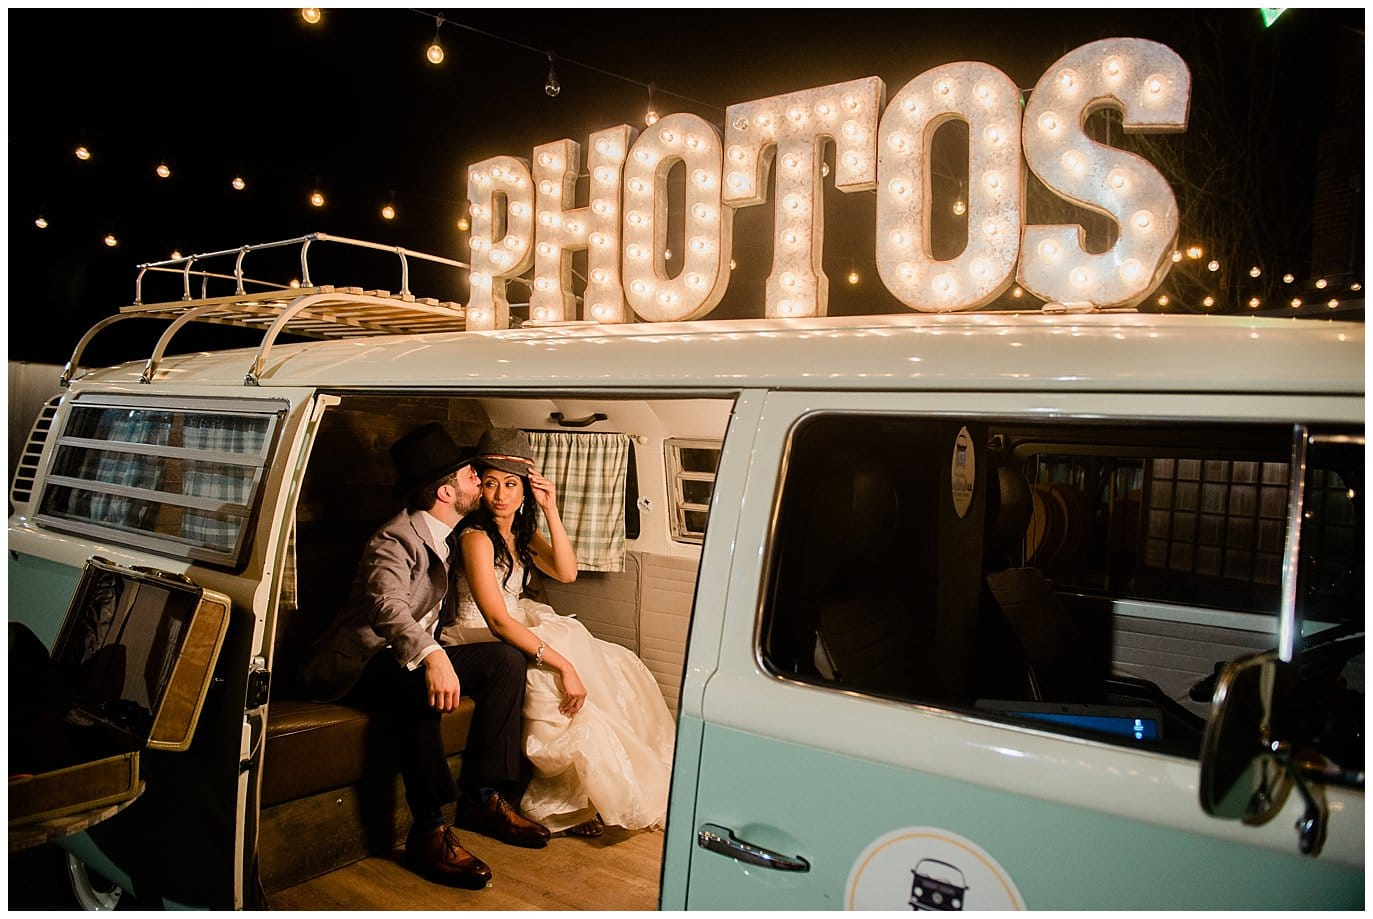 wedding couple in photo booth bus by Blanc Wedding Photographer Jennie Crate